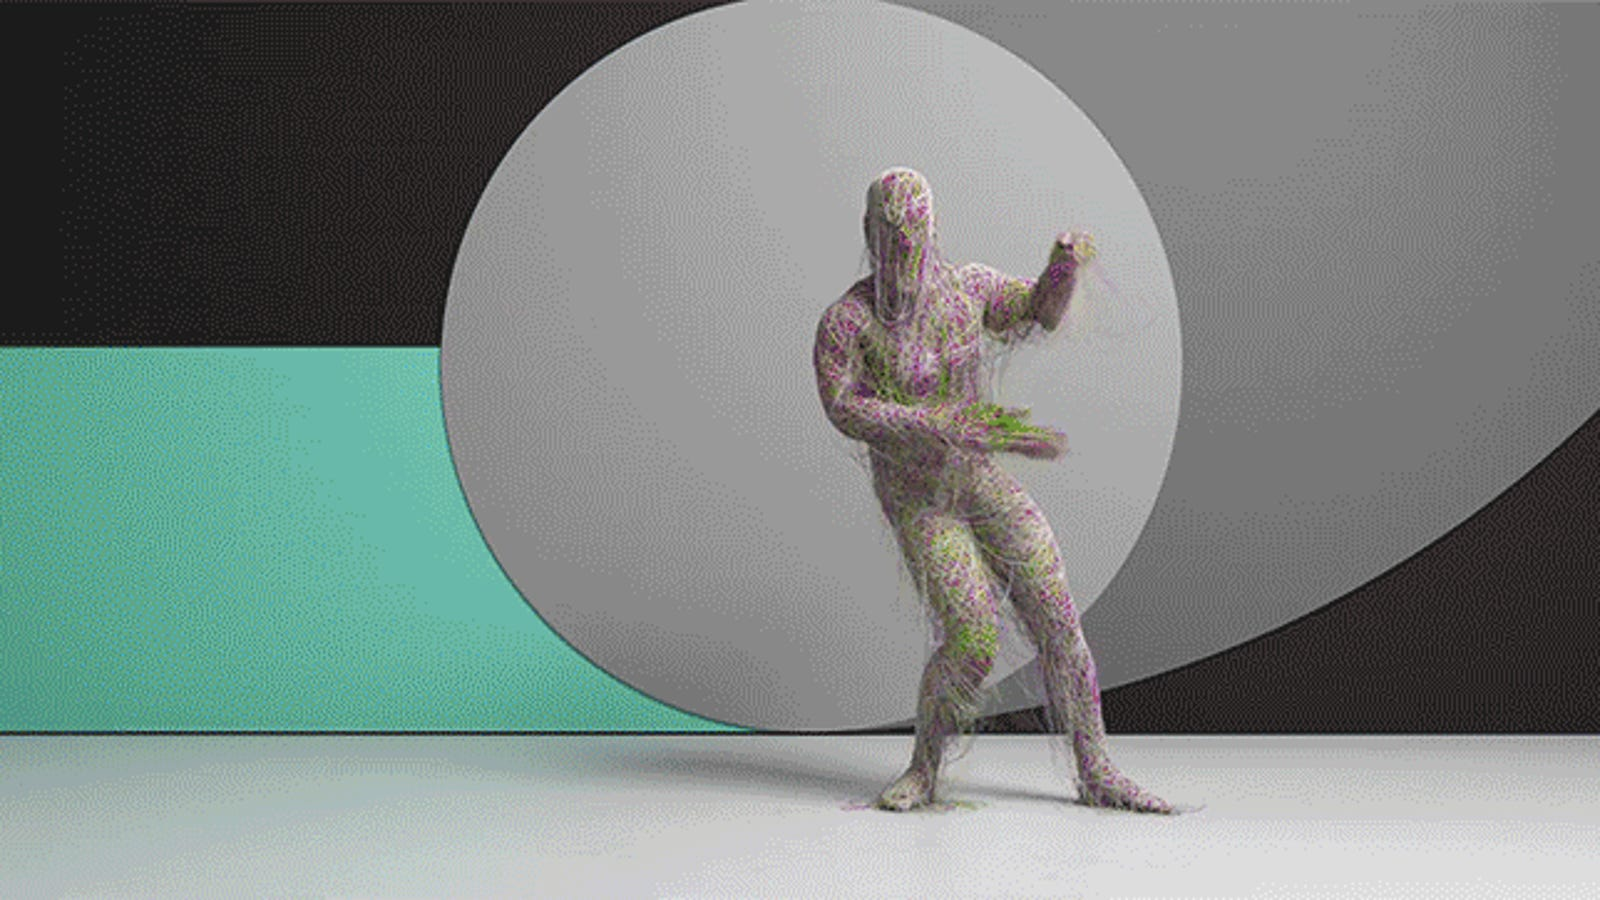 Otherworldly Animation Makes These Motion Captured Dance Moves Even More Amazing